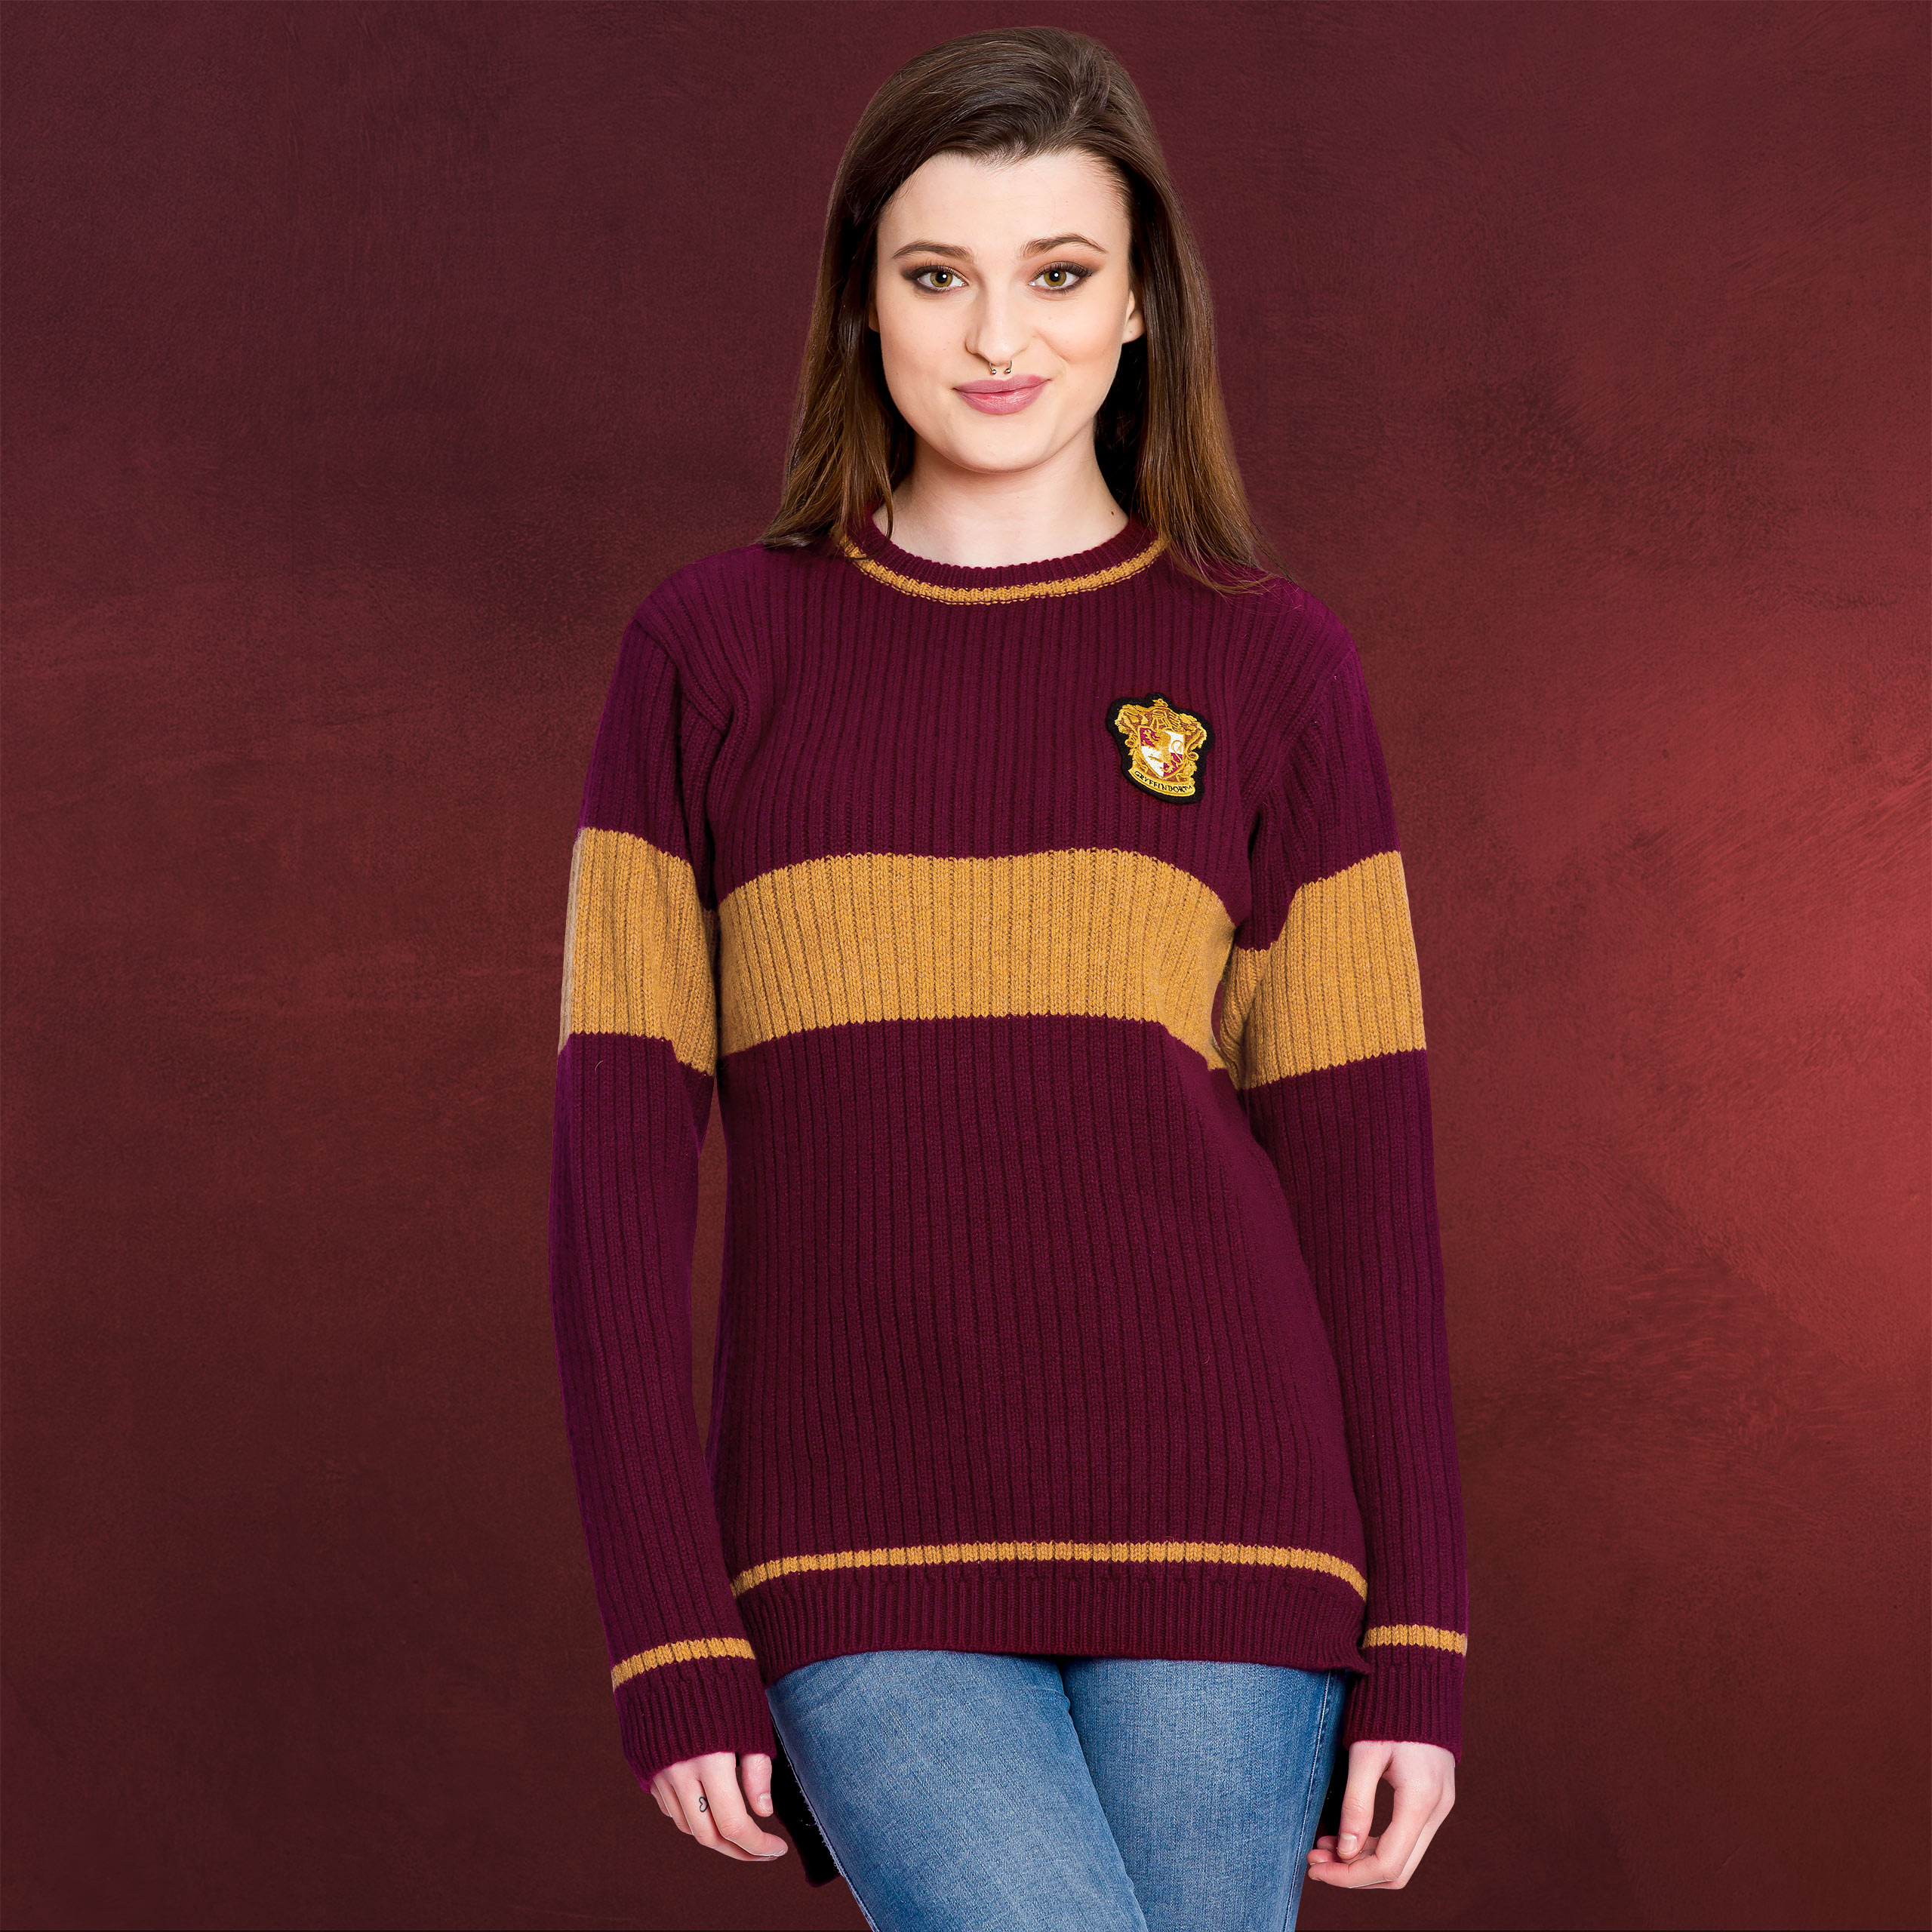 500db923a10 Harry Potter - Quidditch Gryffindor Sweater